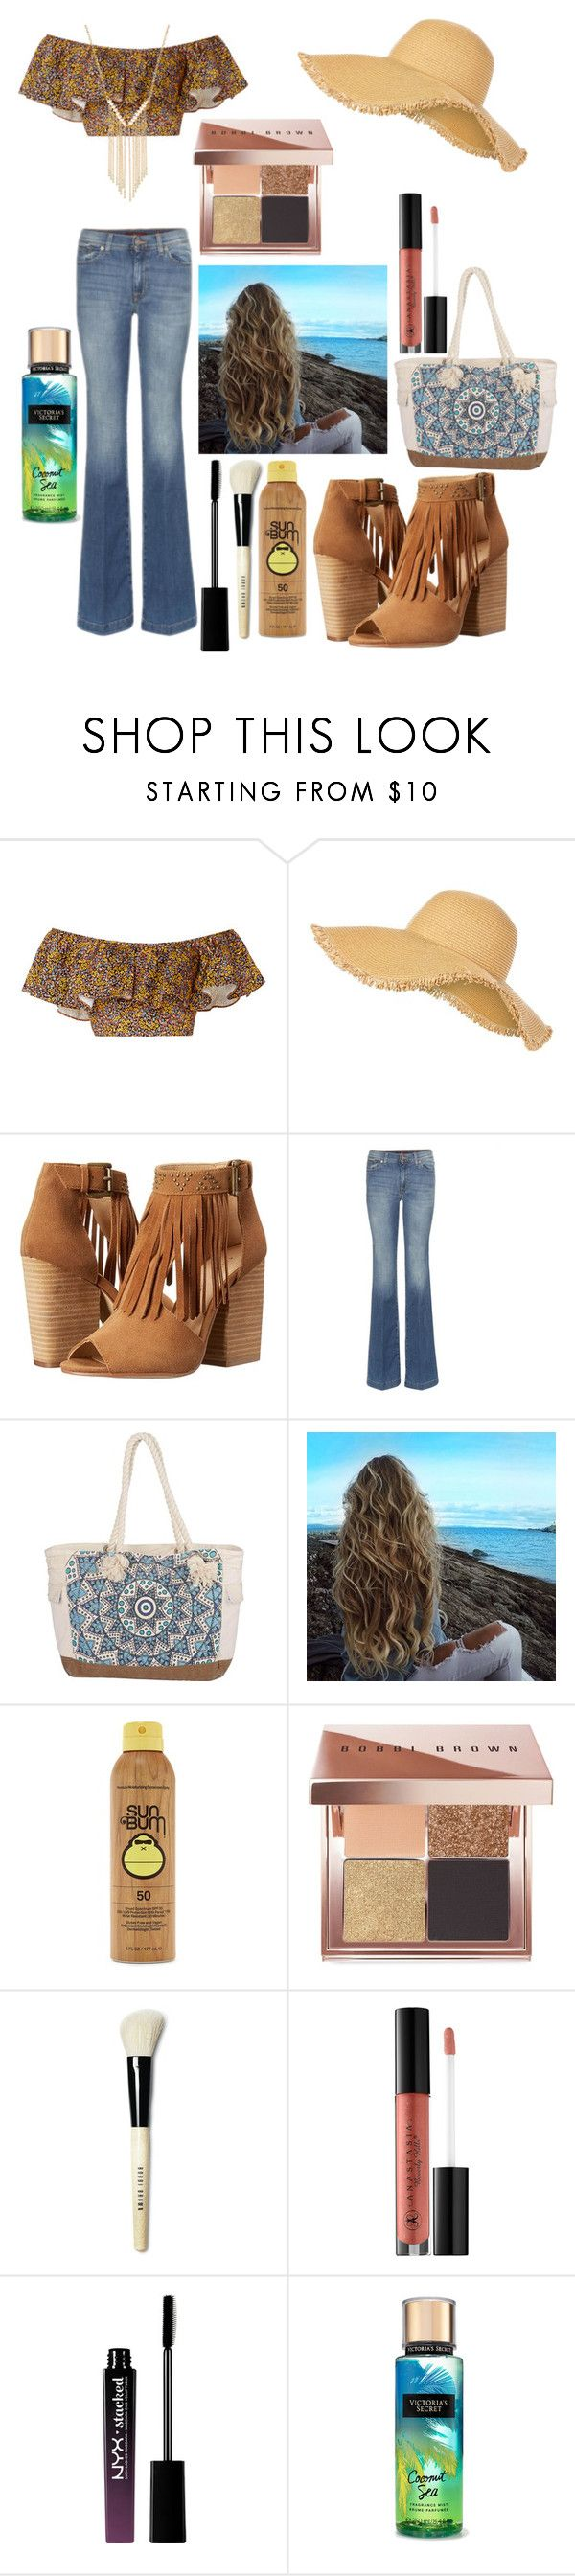 """Spain"" by cambam435 on Polyvore featuring Philosophy di Lorenzo Serafini, New Look, Chinese Laundry, Billabong, Forever 21, Bobbi Brown Cosmetics, Anastasia Beverly Hills, NYX and Gemelli"